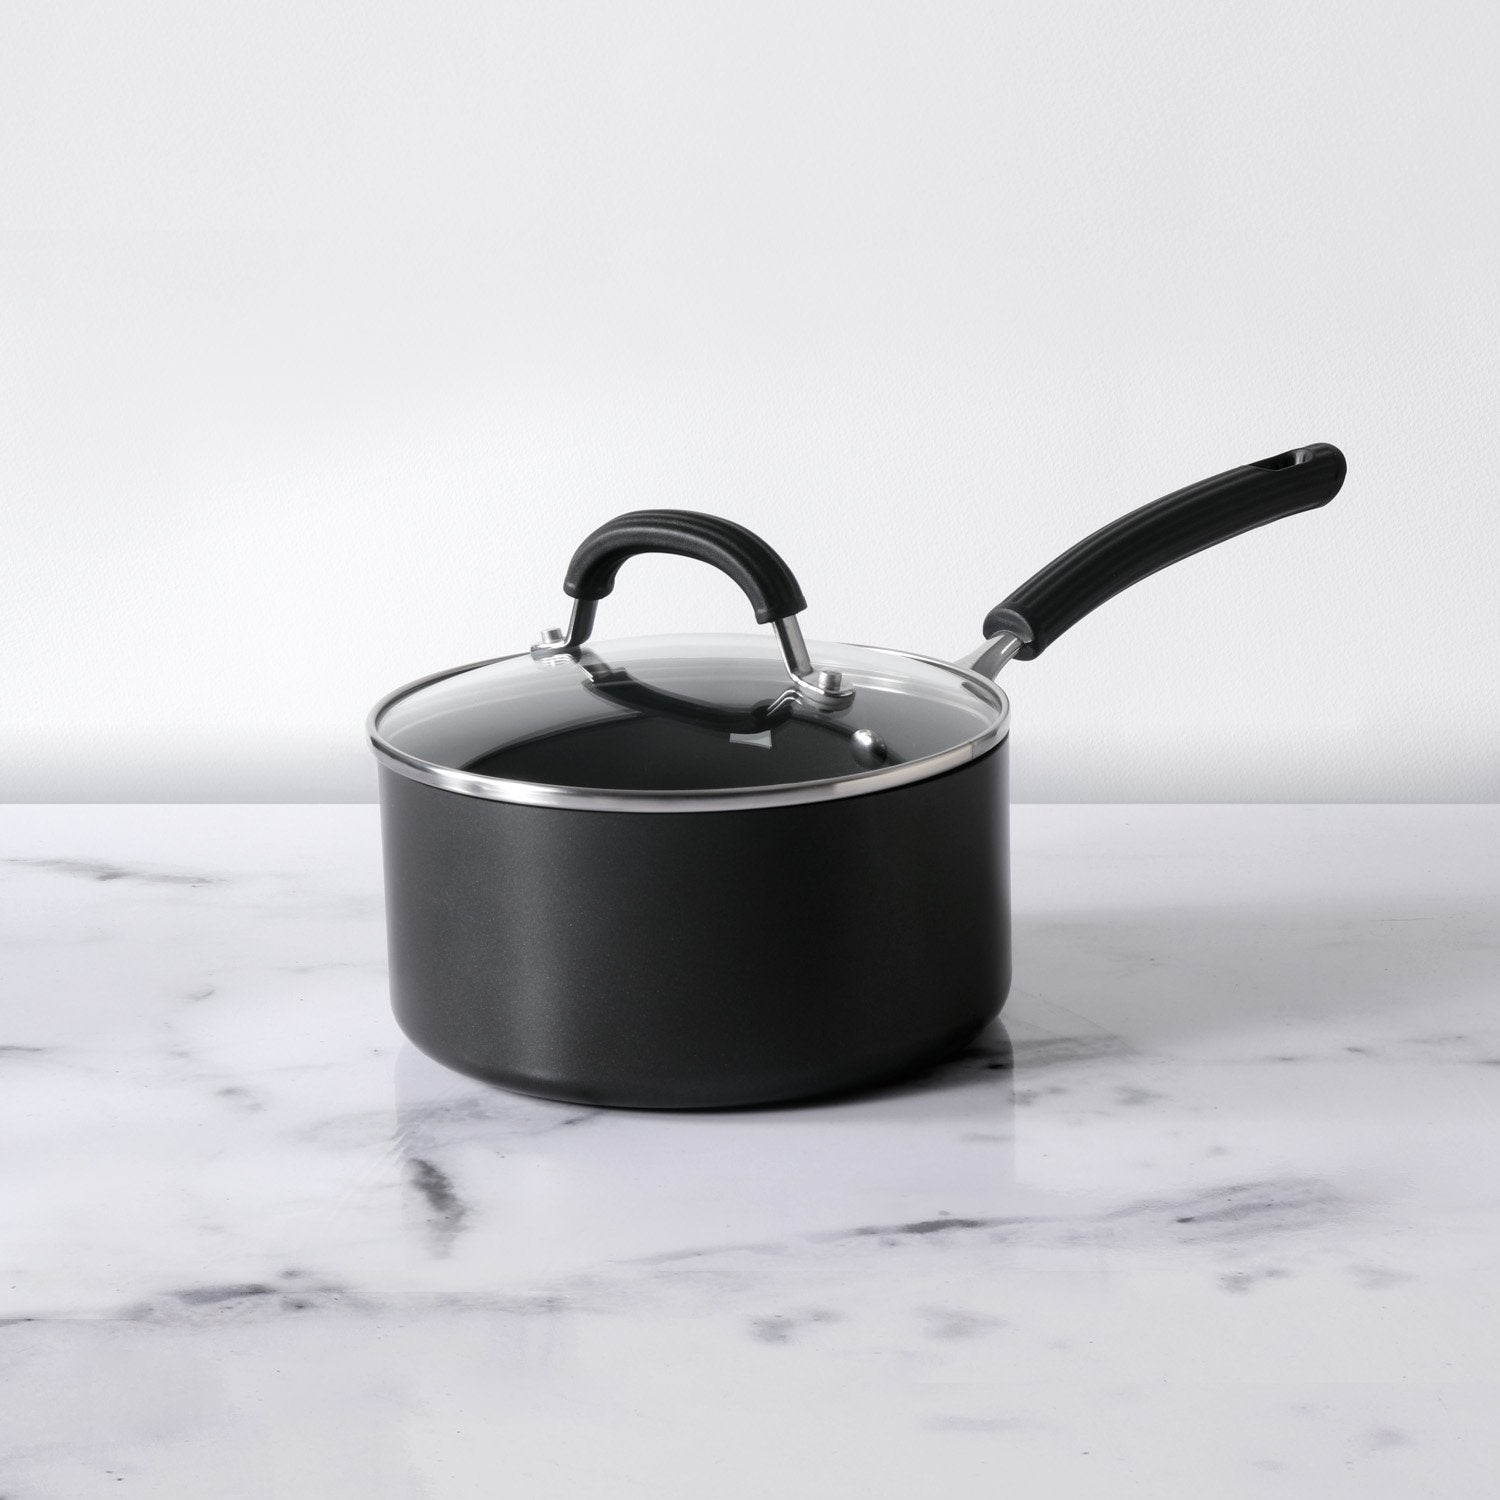 Circulon Origins 18cm Saucepan Non-Stick + Hard Anodized, Grey (Suitable For Gas & Induction) - Pots and Pans